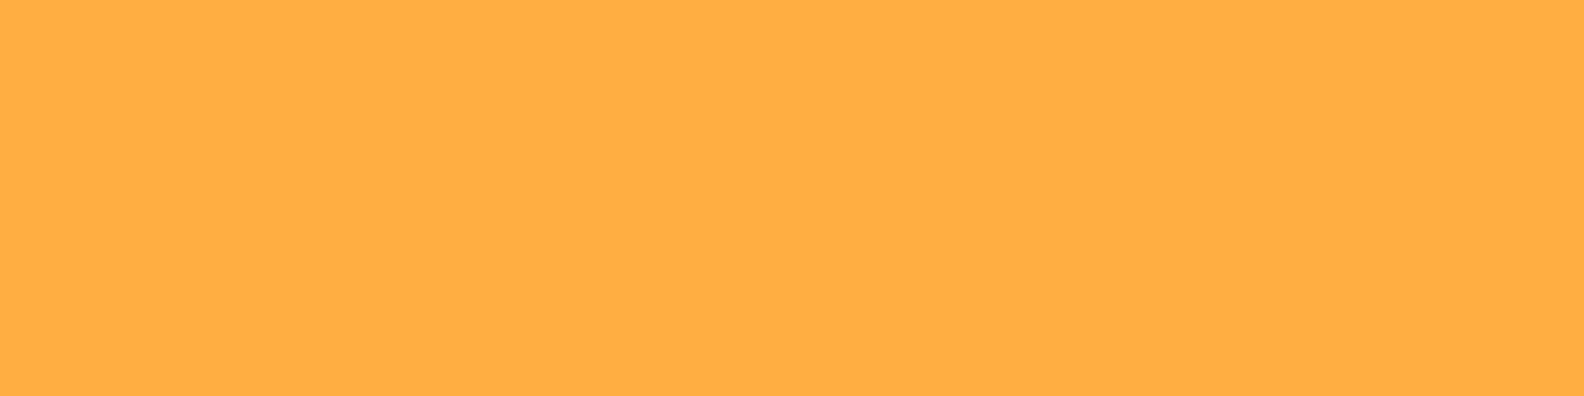 1584x396 Yellow Orange Solid Color Background